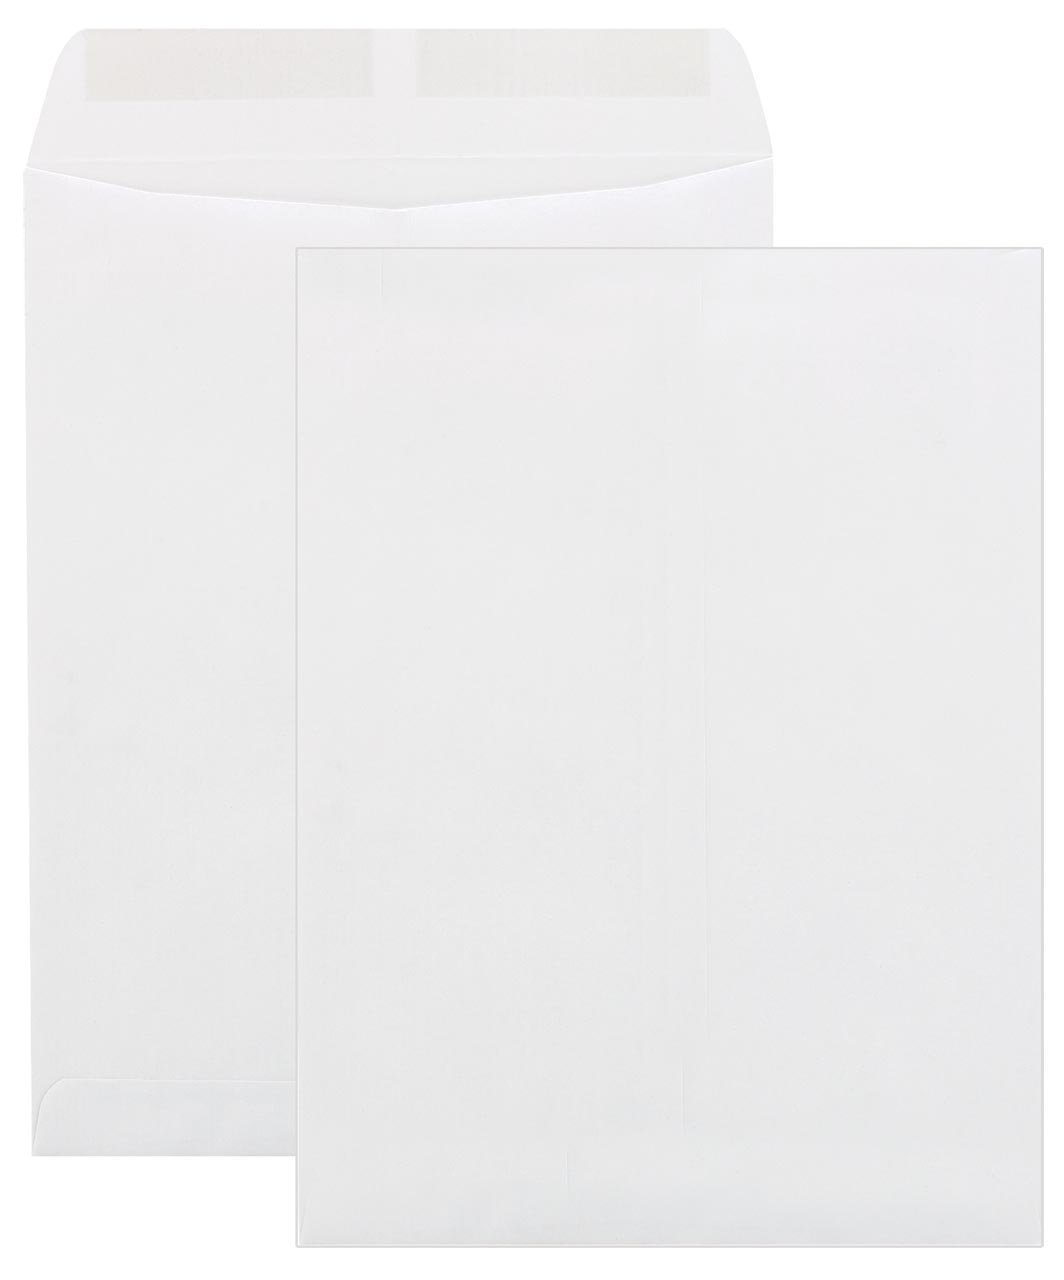 Columbian CO635 9x12-Inch Catalog White Envelopes, 250 Count MEAD WESTVACO